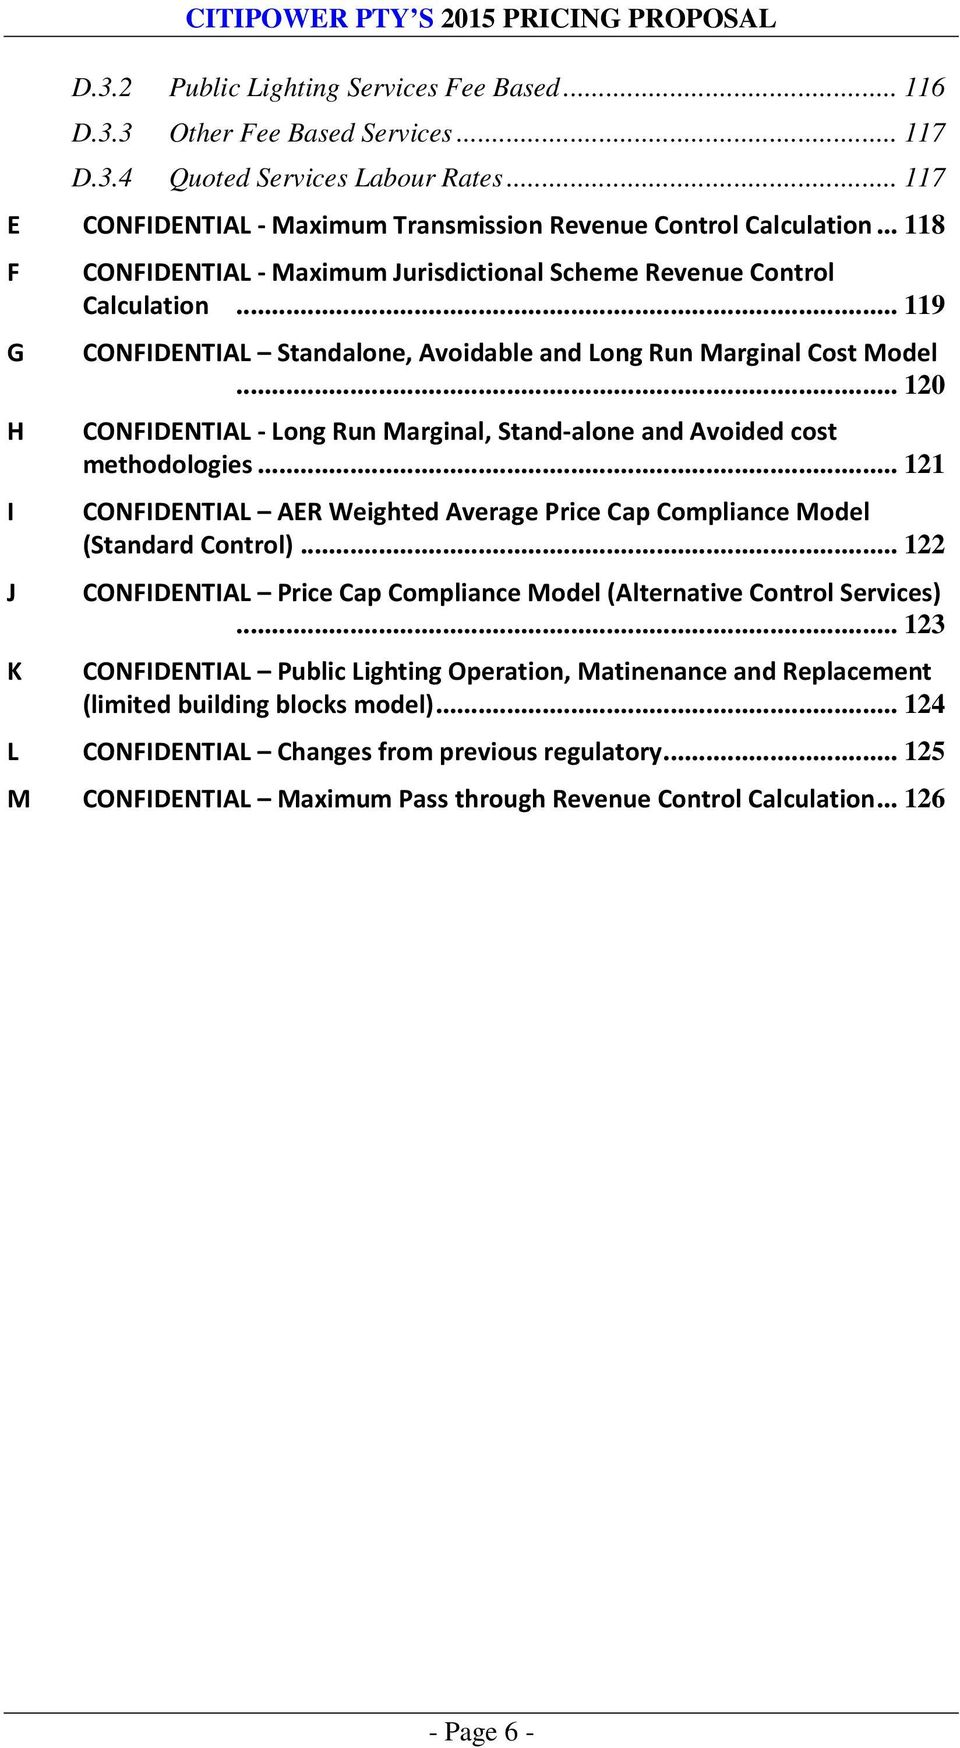 .. 120 CONFIDENTIAL - Long Run Marginal, Stand-alone and Avoided cost methodologies... 121 CONFIDENTIAL AER Weighted Average Price Cap Compliance Model (Standard Control).